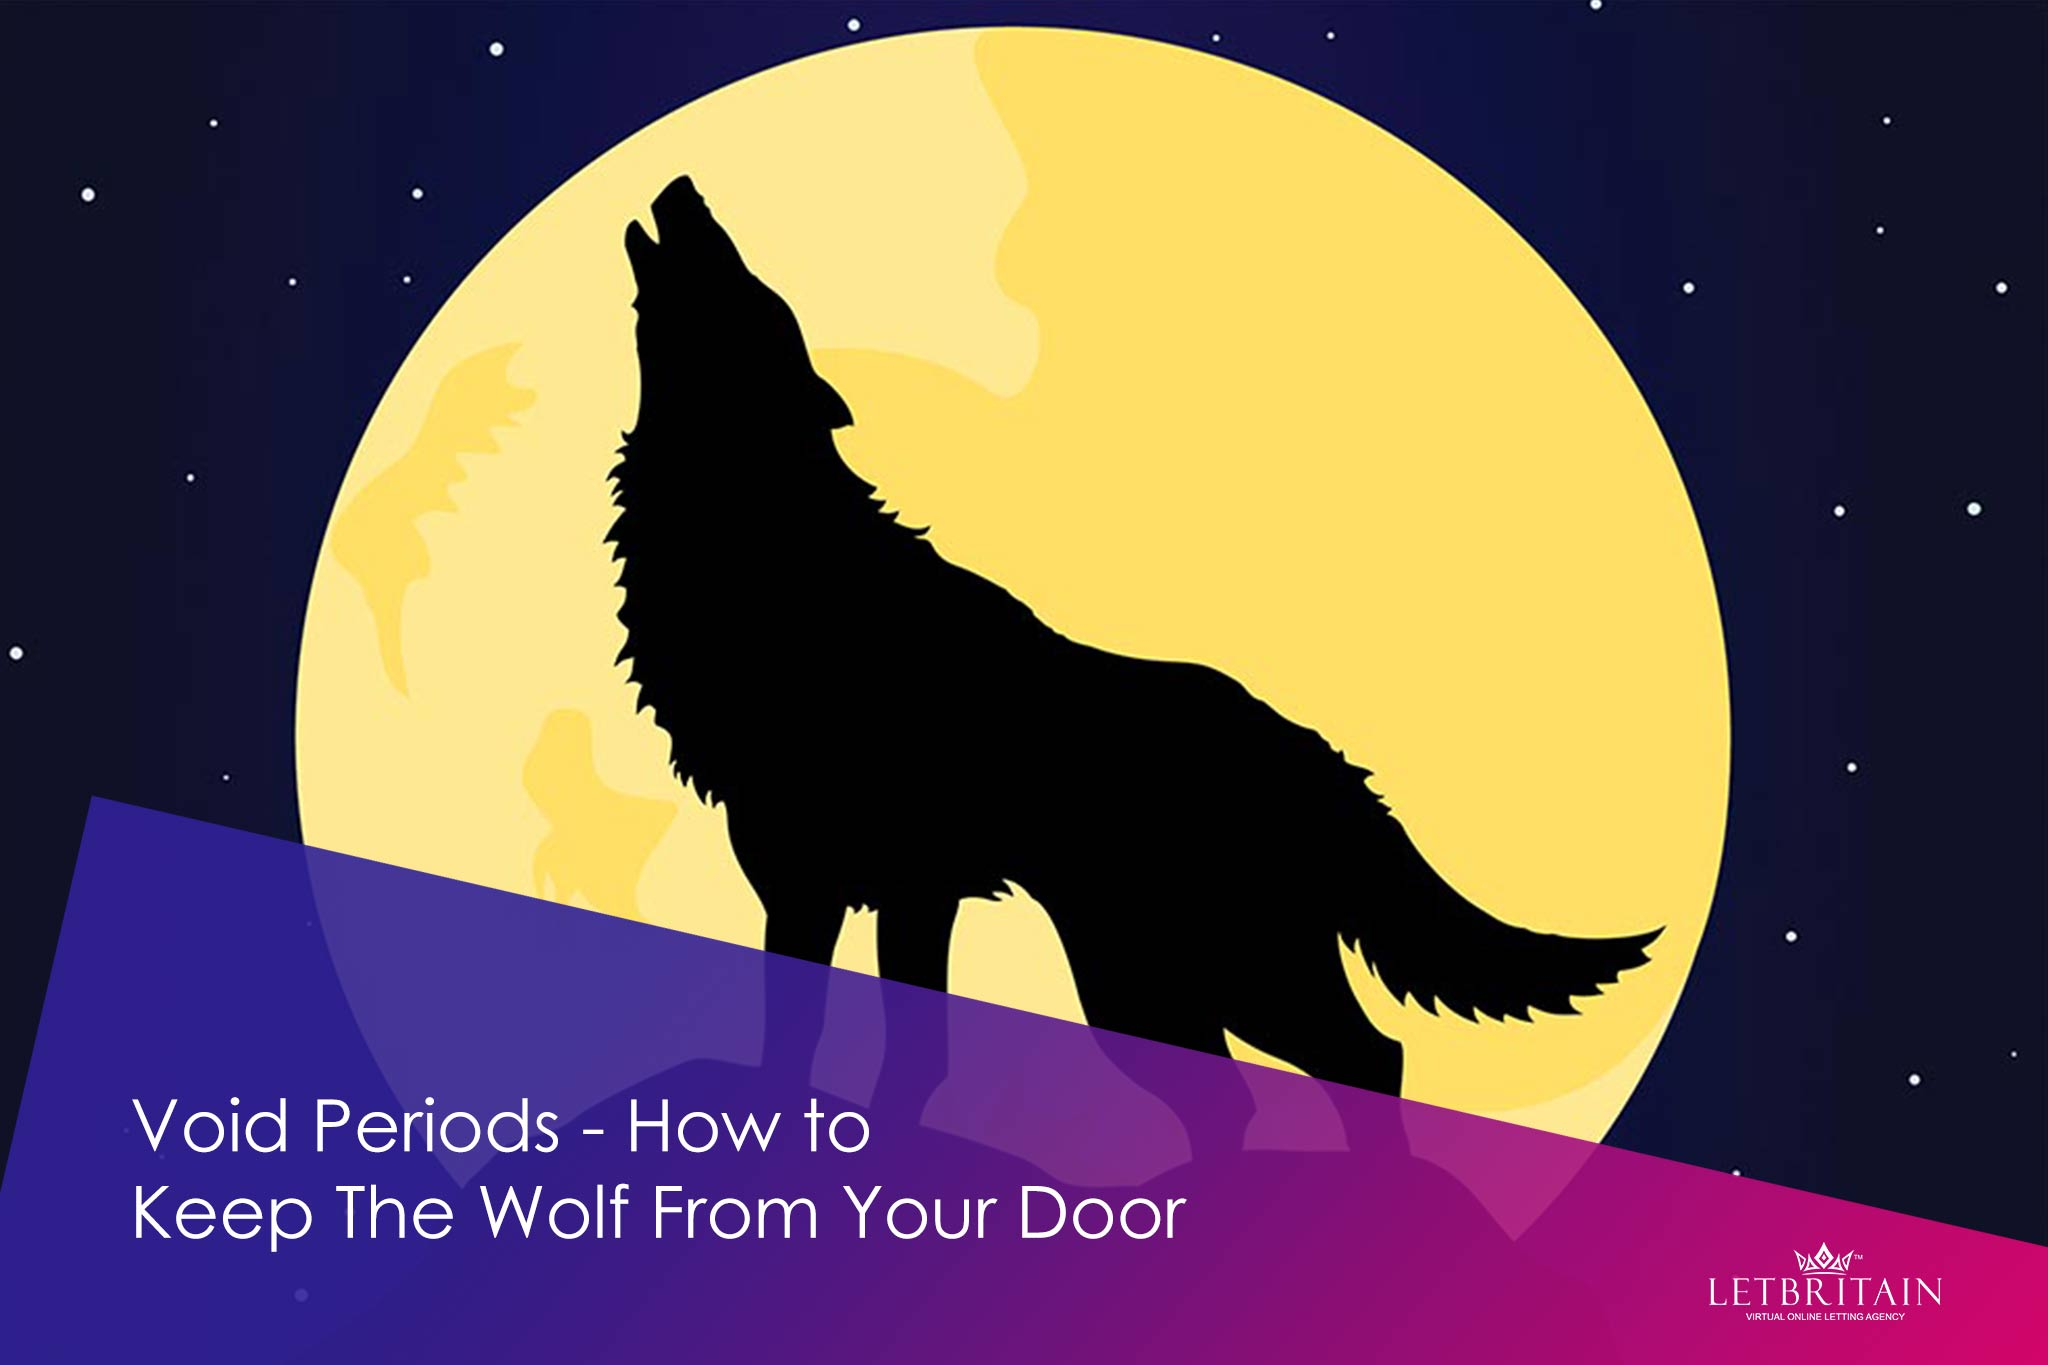 oid Periods - How to Keep The Wolf From Your Door